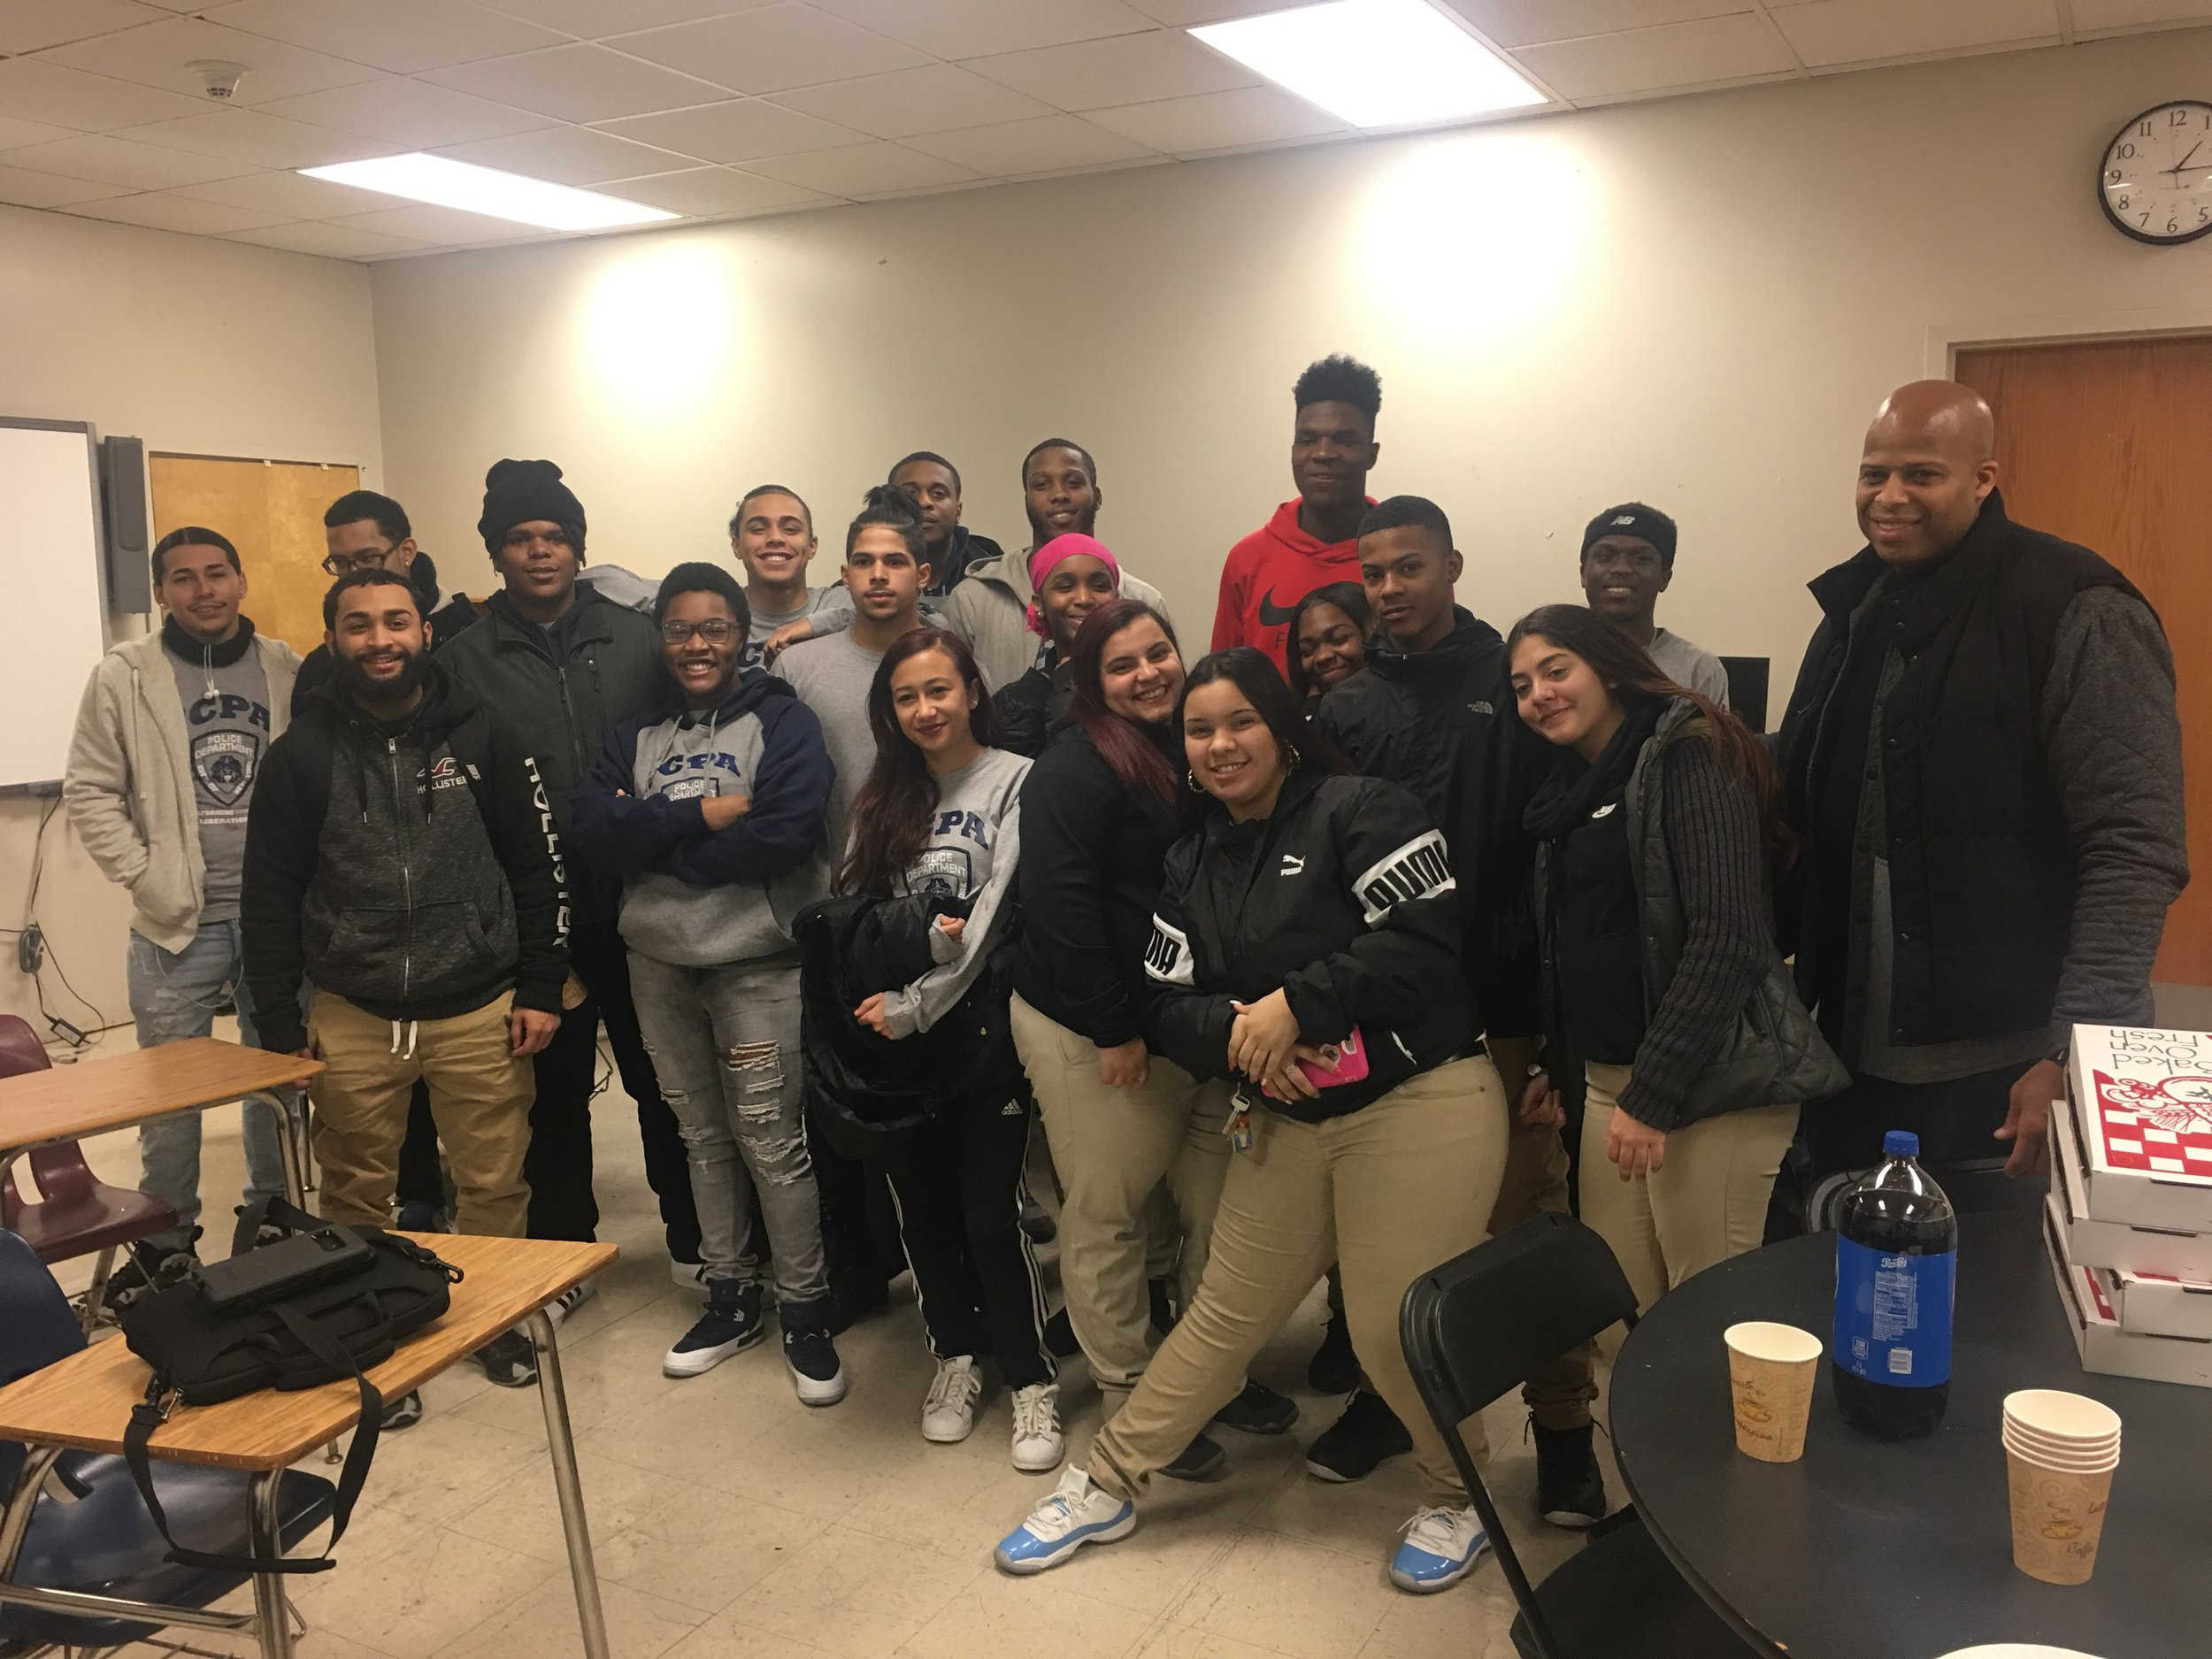 Our friends from the Junior Citizen Police Academy alumni shared their own empowering experiences engaging with police officers.